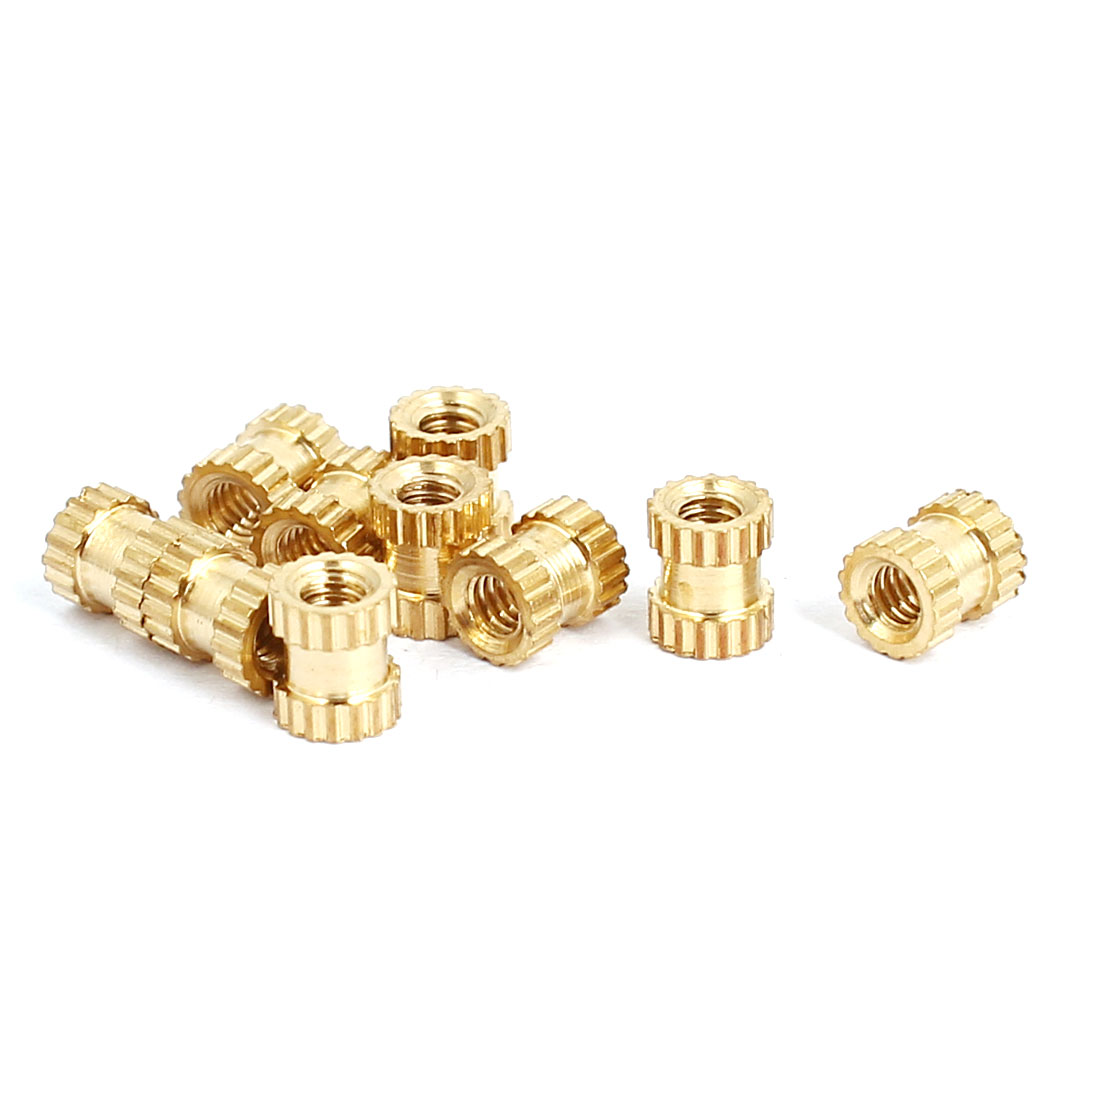 M2x4mmx3.5mm Brass Knurled Threaded Nut Insert Embedded Nuts Gold Tone 10pcs